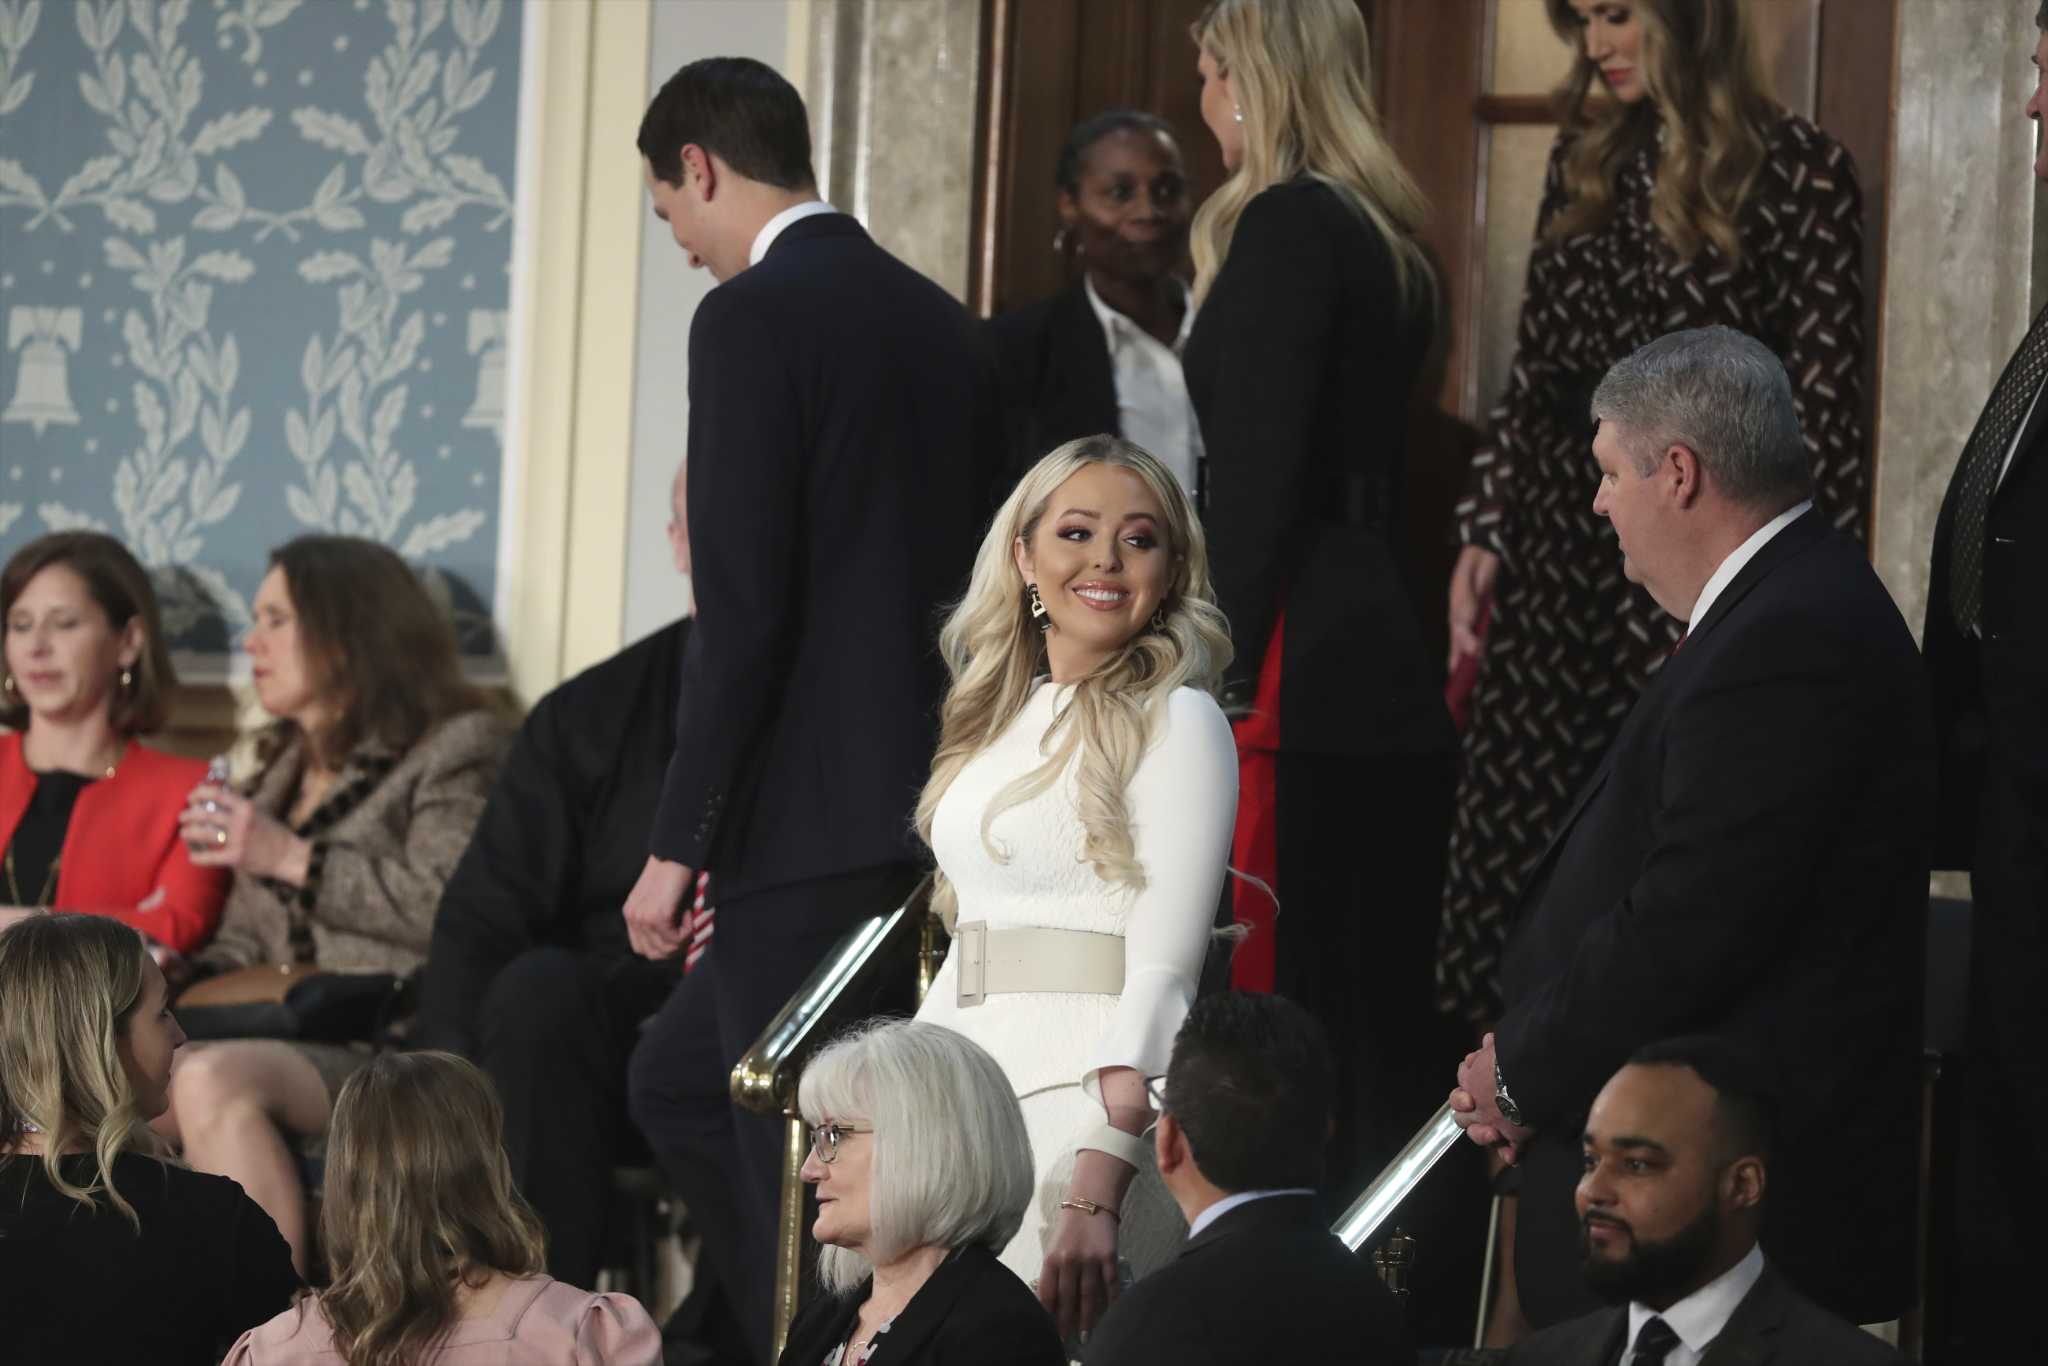 69a3f1f7c Tiffany Trump wore white to the State of the Union, matching many Dems